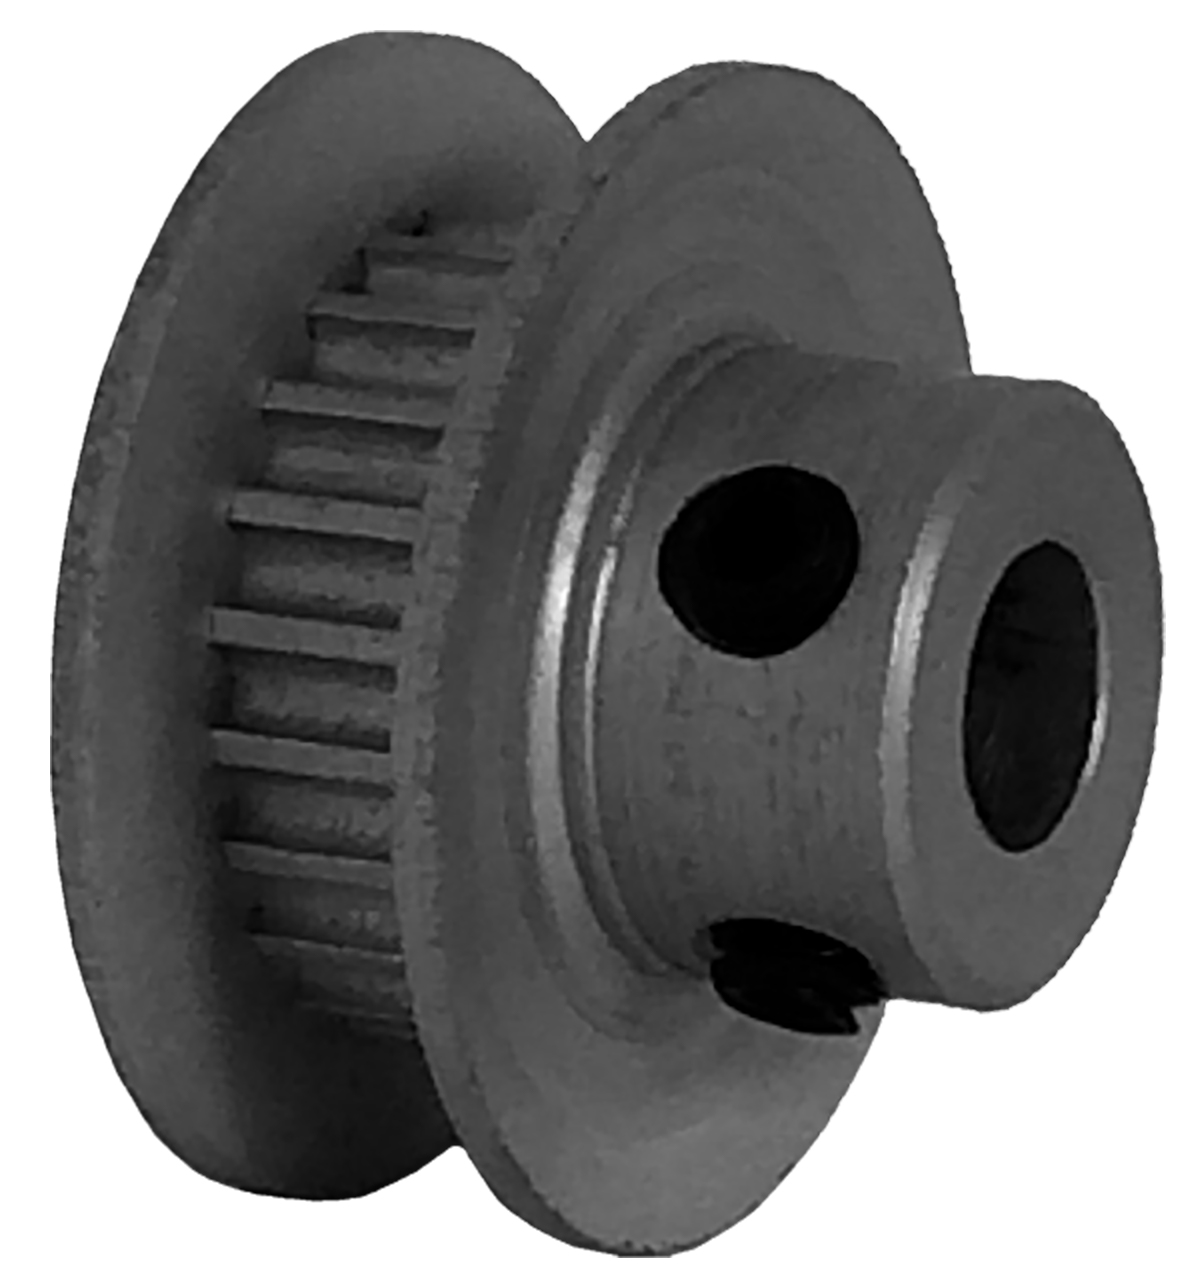 22-2P03-6FA2 - Aluminum Powerhouse® Pulleys